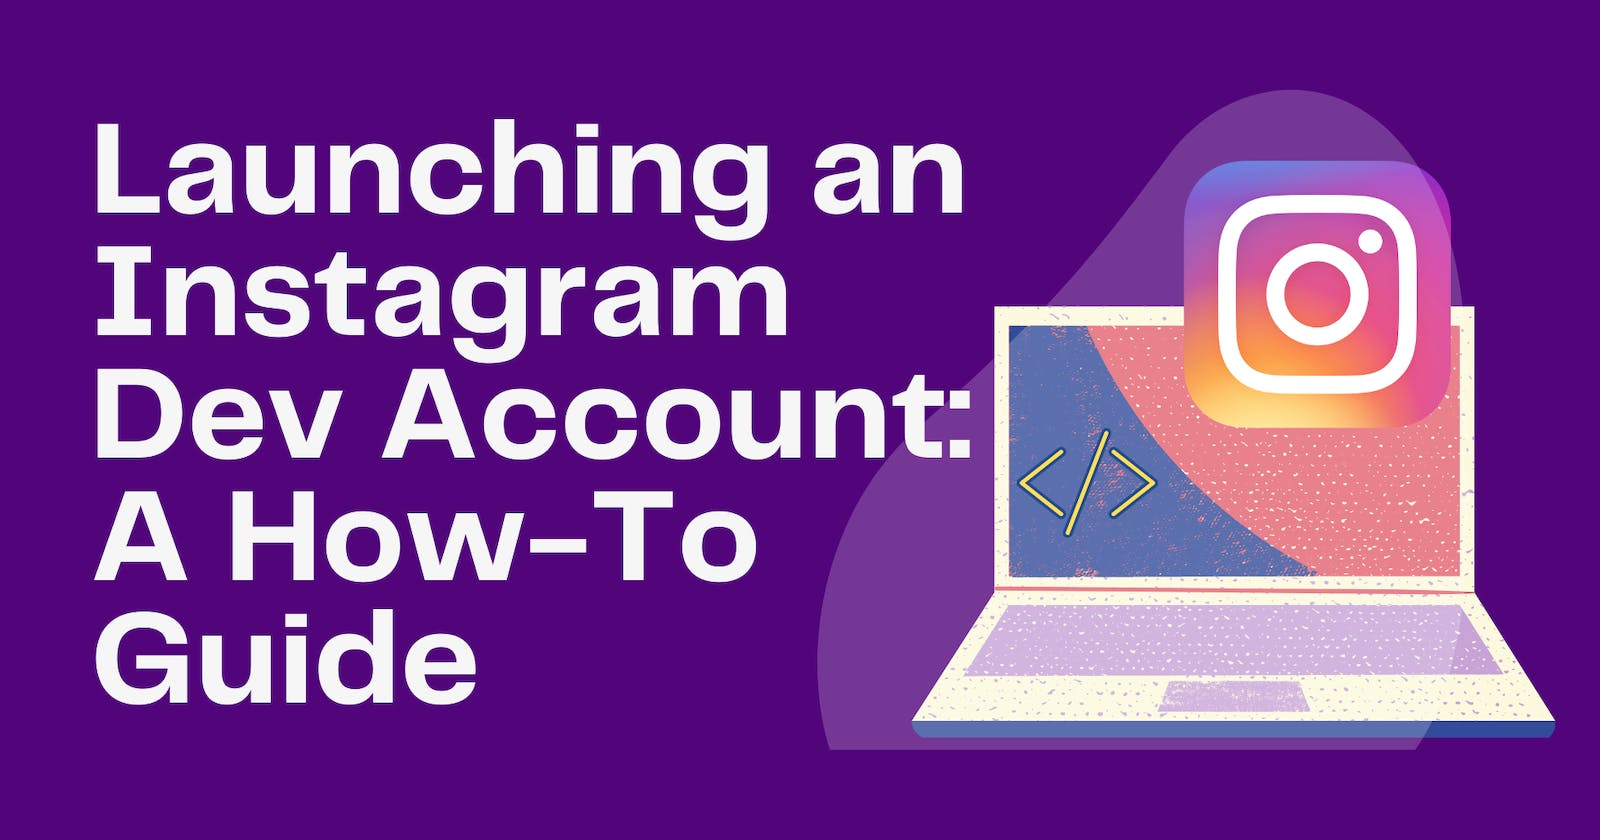 Launching an Instagram Dev Account: A How-To Guide